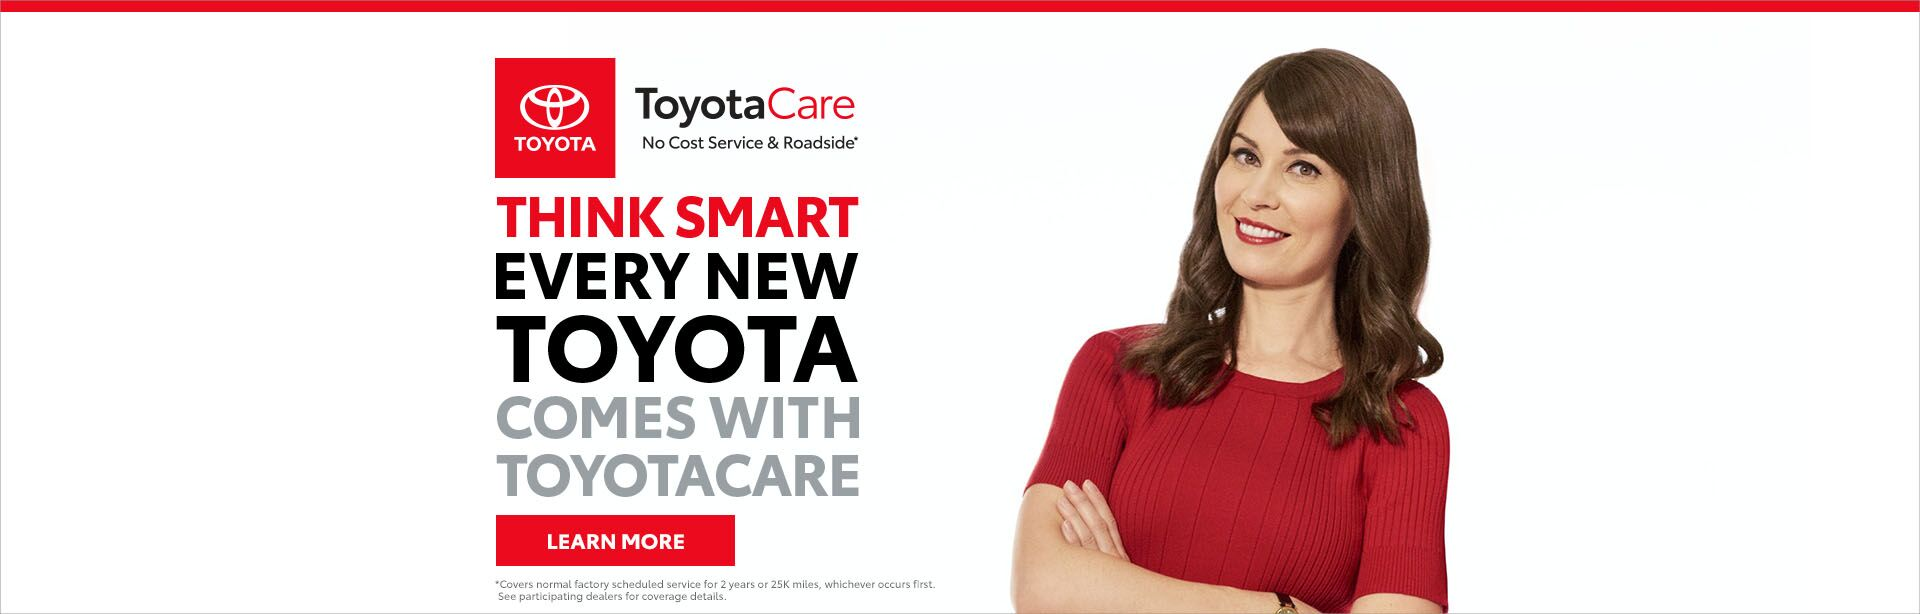 ToyotaCare Every new Toyota comes with new ToyotCare